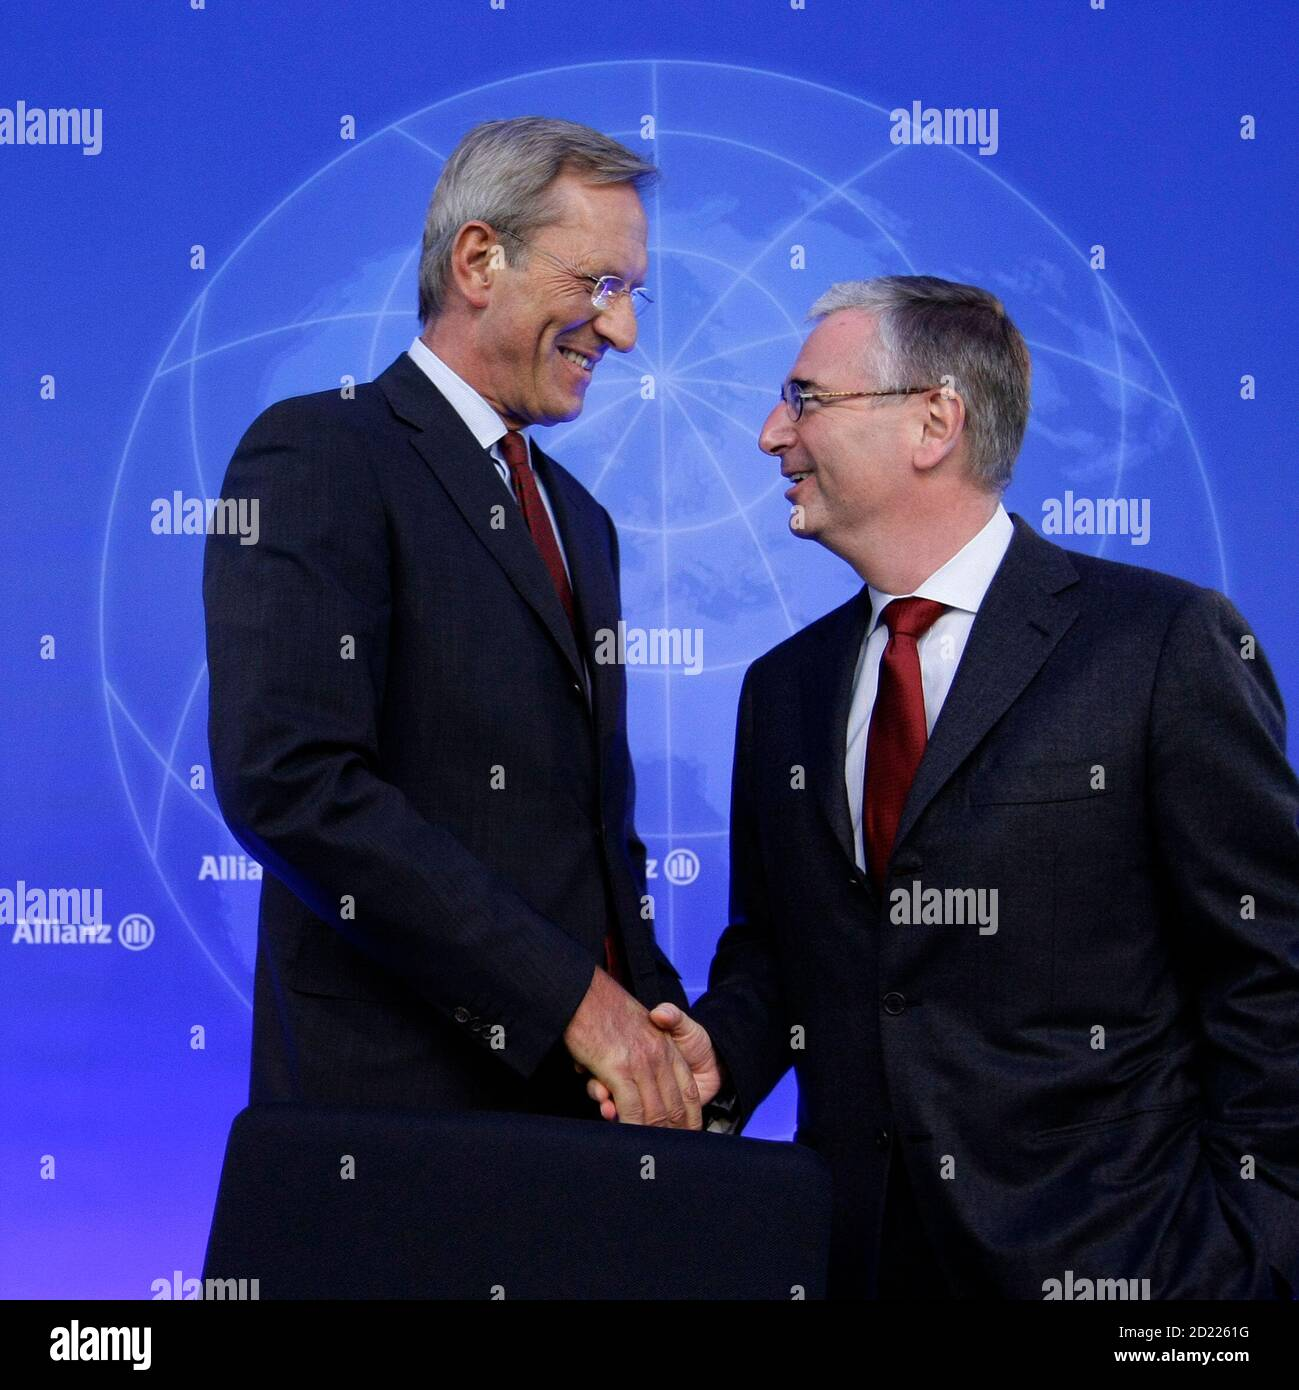 Michael Diekmann (L), CEO of Europe's biggest insurer Allianz SE, greets his Chief Financial Officer (CFO) Paul Achleitner before their company's annual news conference in Munich February 25, 2010. Allianz Group today reported solid results for fiscal year 2009, despite a challenging global economy. Based on preliminary figures, total revenues grew 5.2 percent to 97.4 billion euros for the year.  REUTERS/Michaela Rehle (GERMANY) Stock Photo